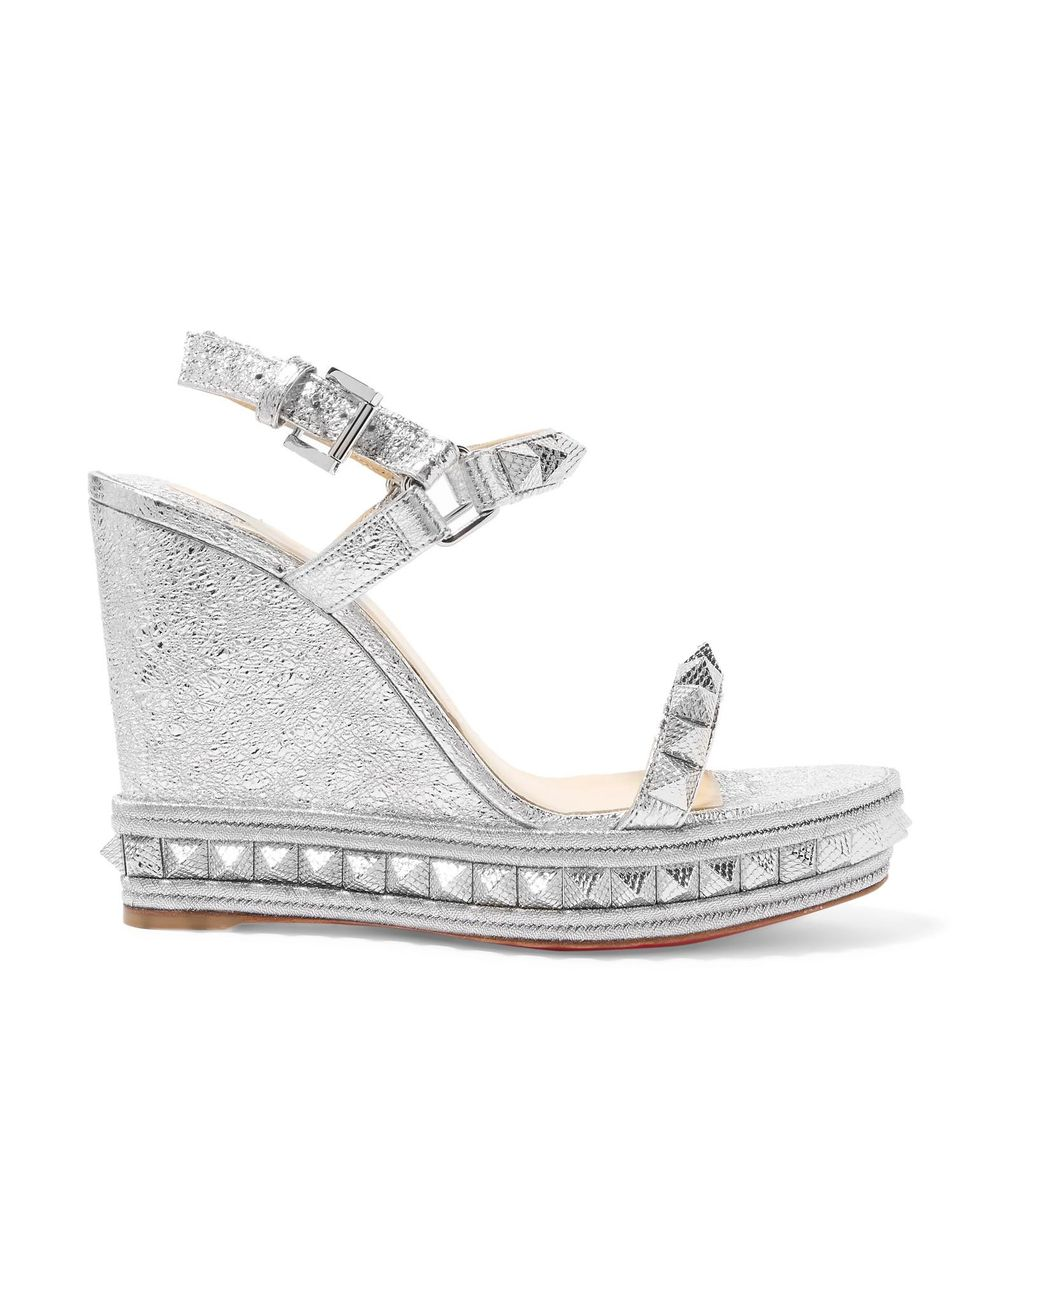 8c2f996f2676 Christian Louboutin. Women s Pyraclou 110 Spiked Metallic Textured-leather Wedge  Sandals